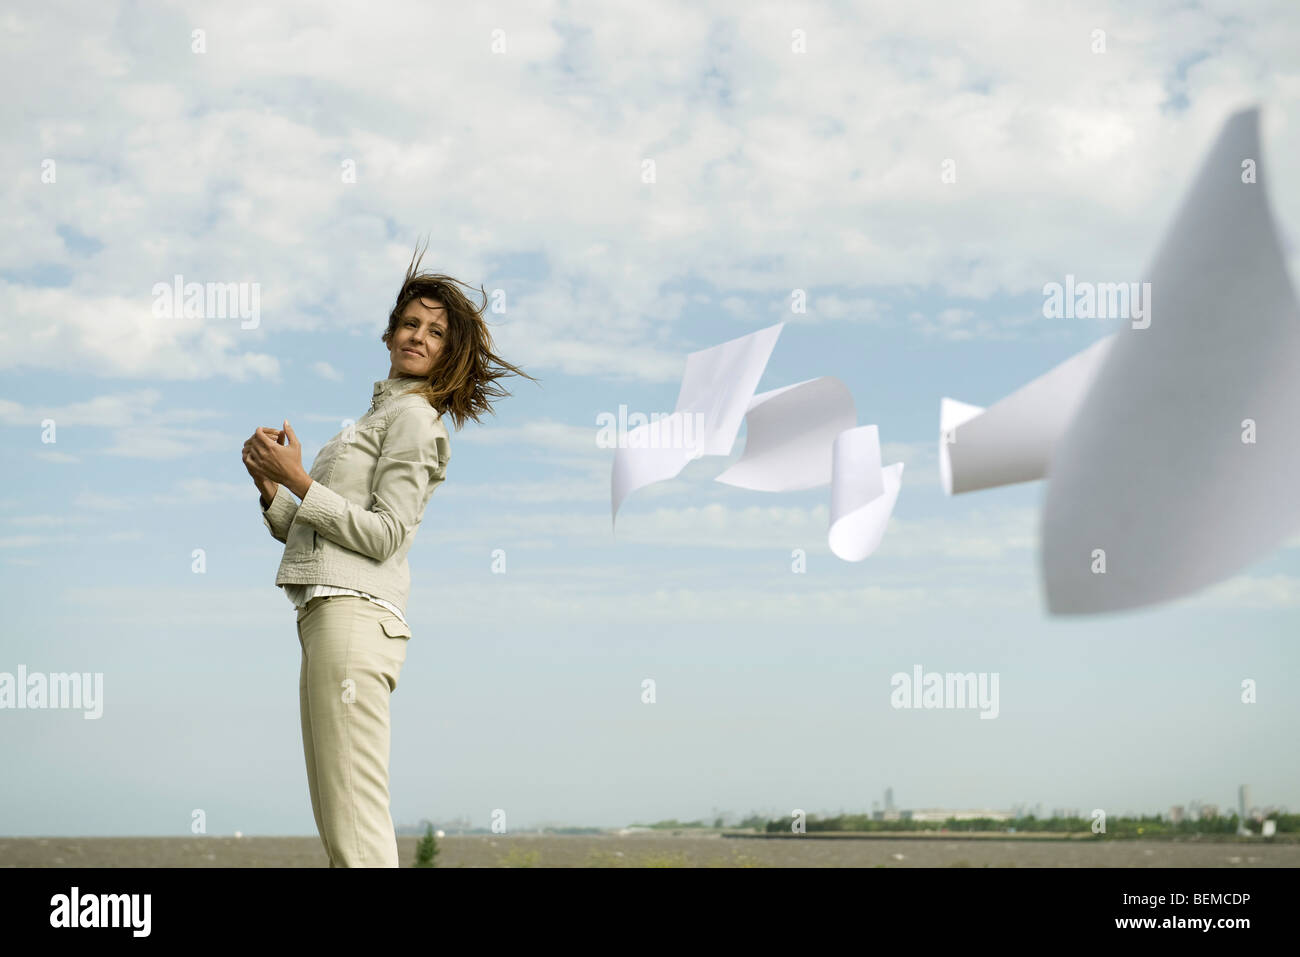 Woman outdoors watching documents caught in wind fly away - Stock Image